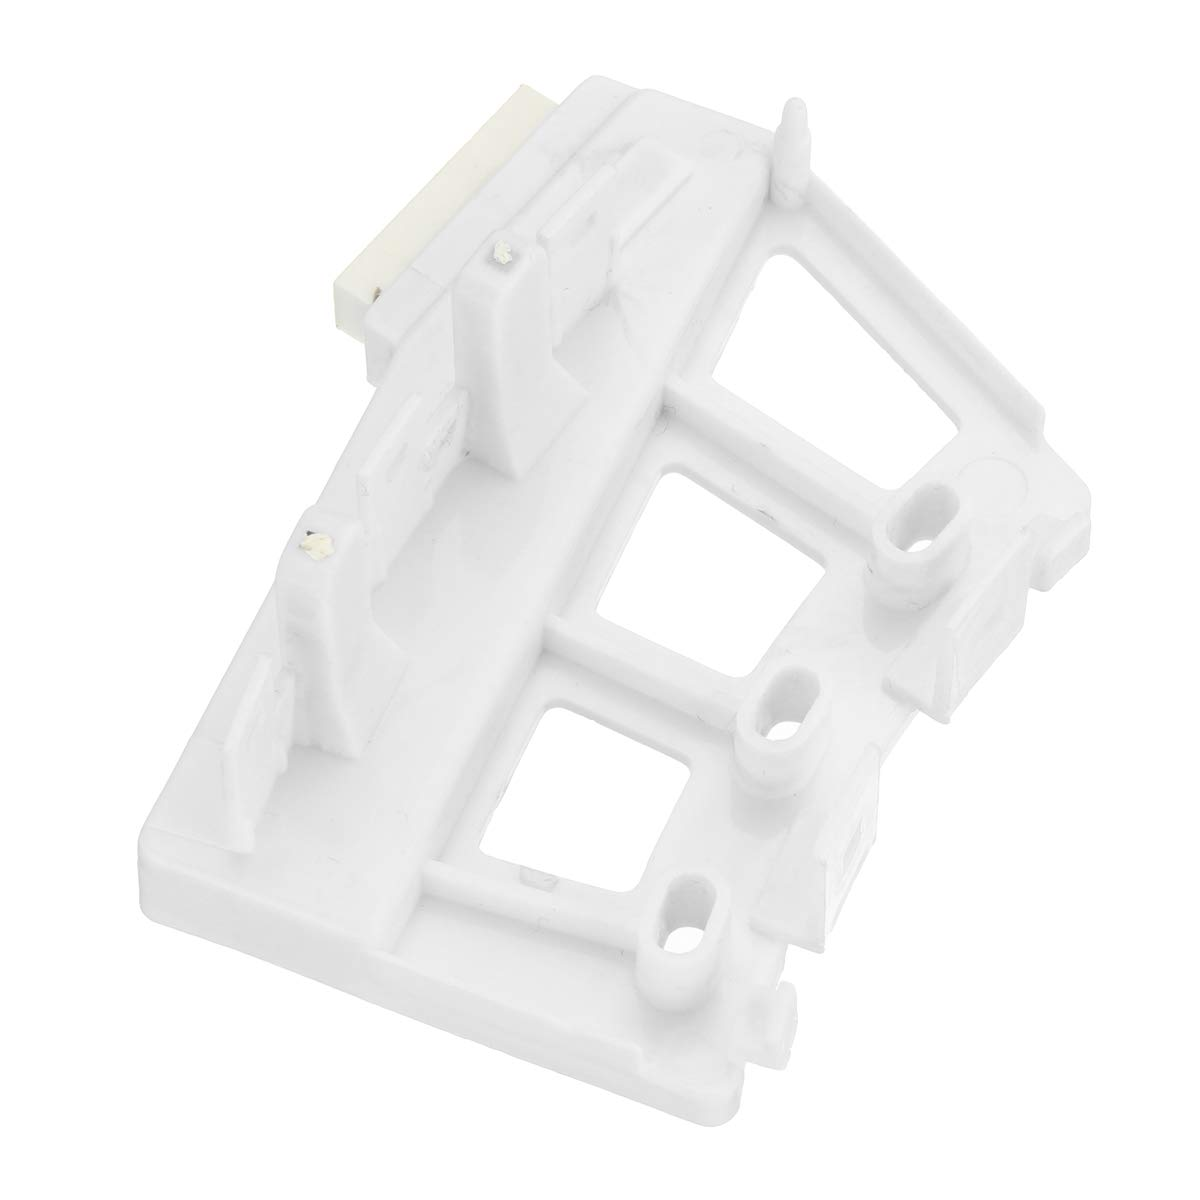 ExcLent Washer Washing Machine Rotor Position Sensor Assembly For Lg Electronics 6501Kw2002A